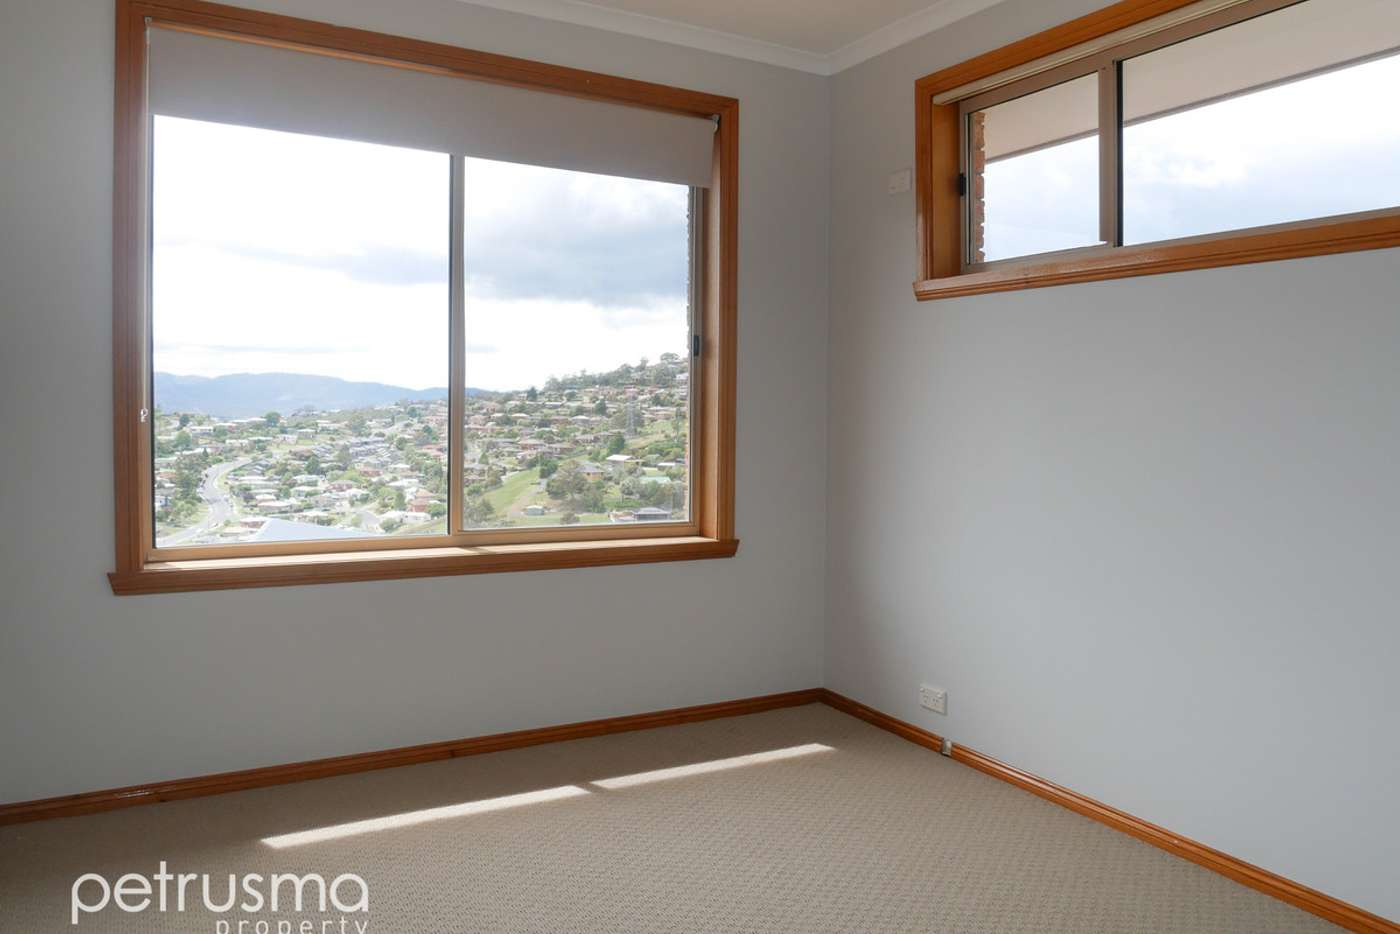 Seventh view of Homely unit listing, 7/6 Peppo Court, Glenorchy TAS 7010